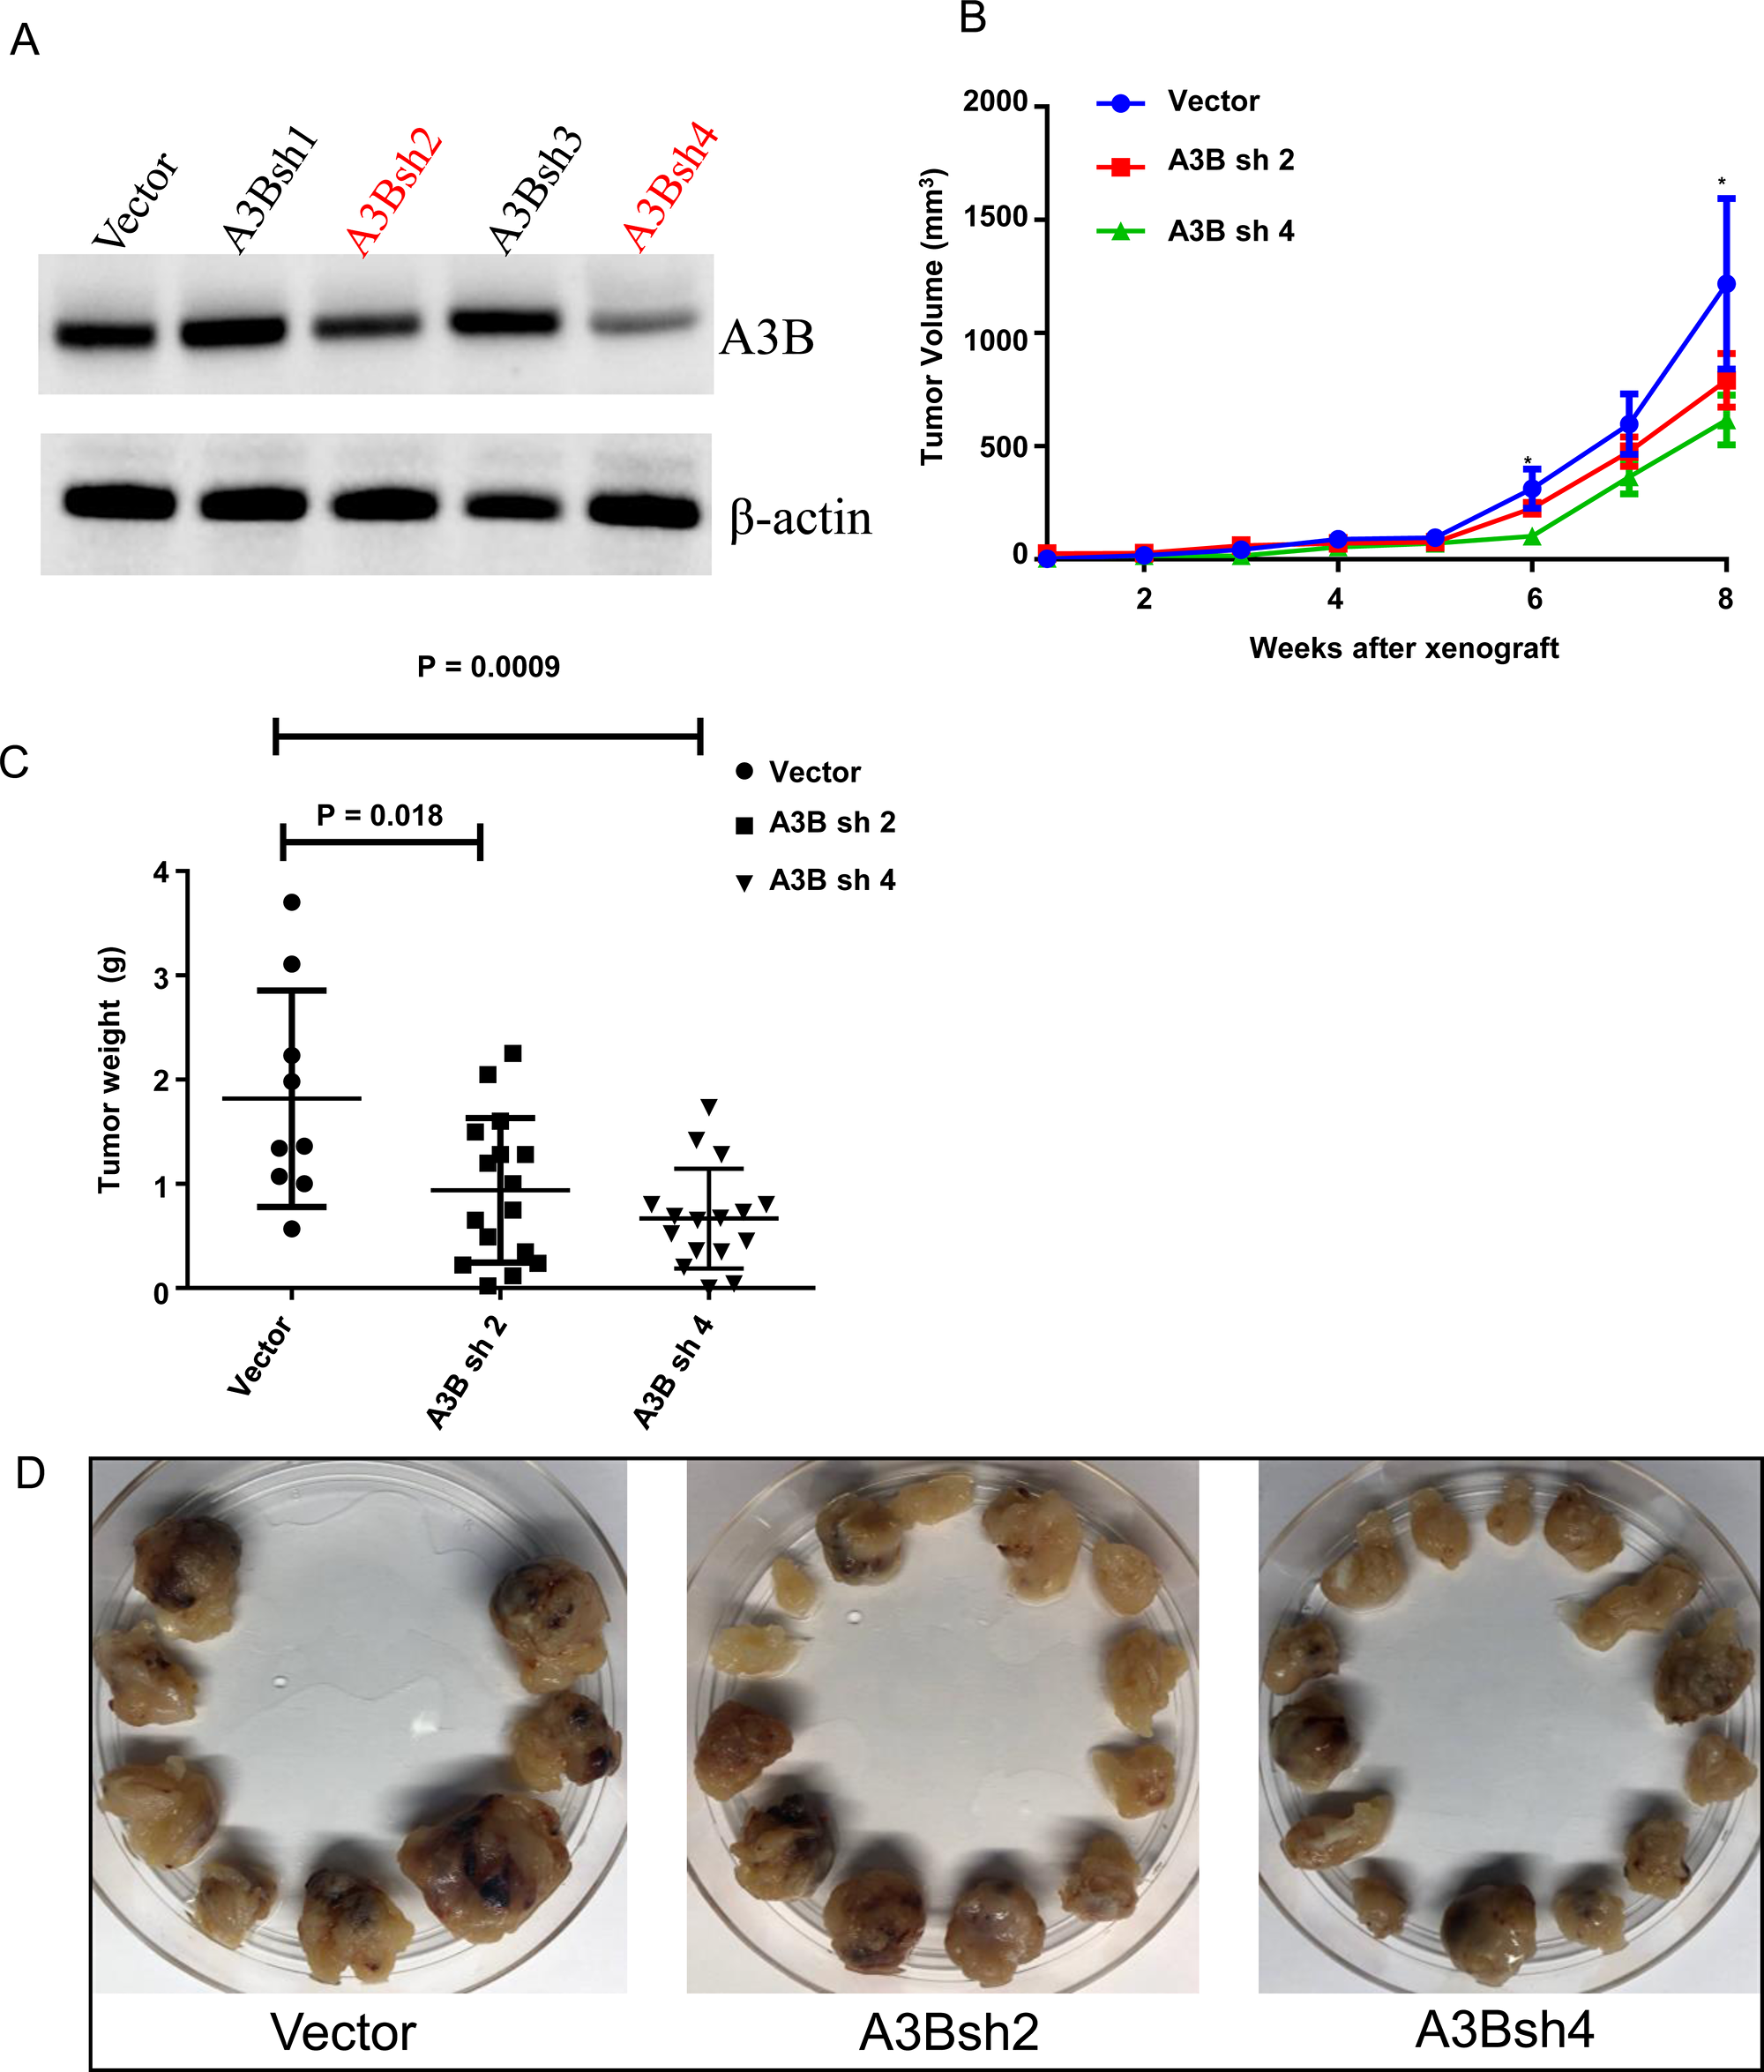 Knockdown of APOBEC3B is associated with a lower tumor growth in an adrenocortical carcinoma xenograft mouse model.